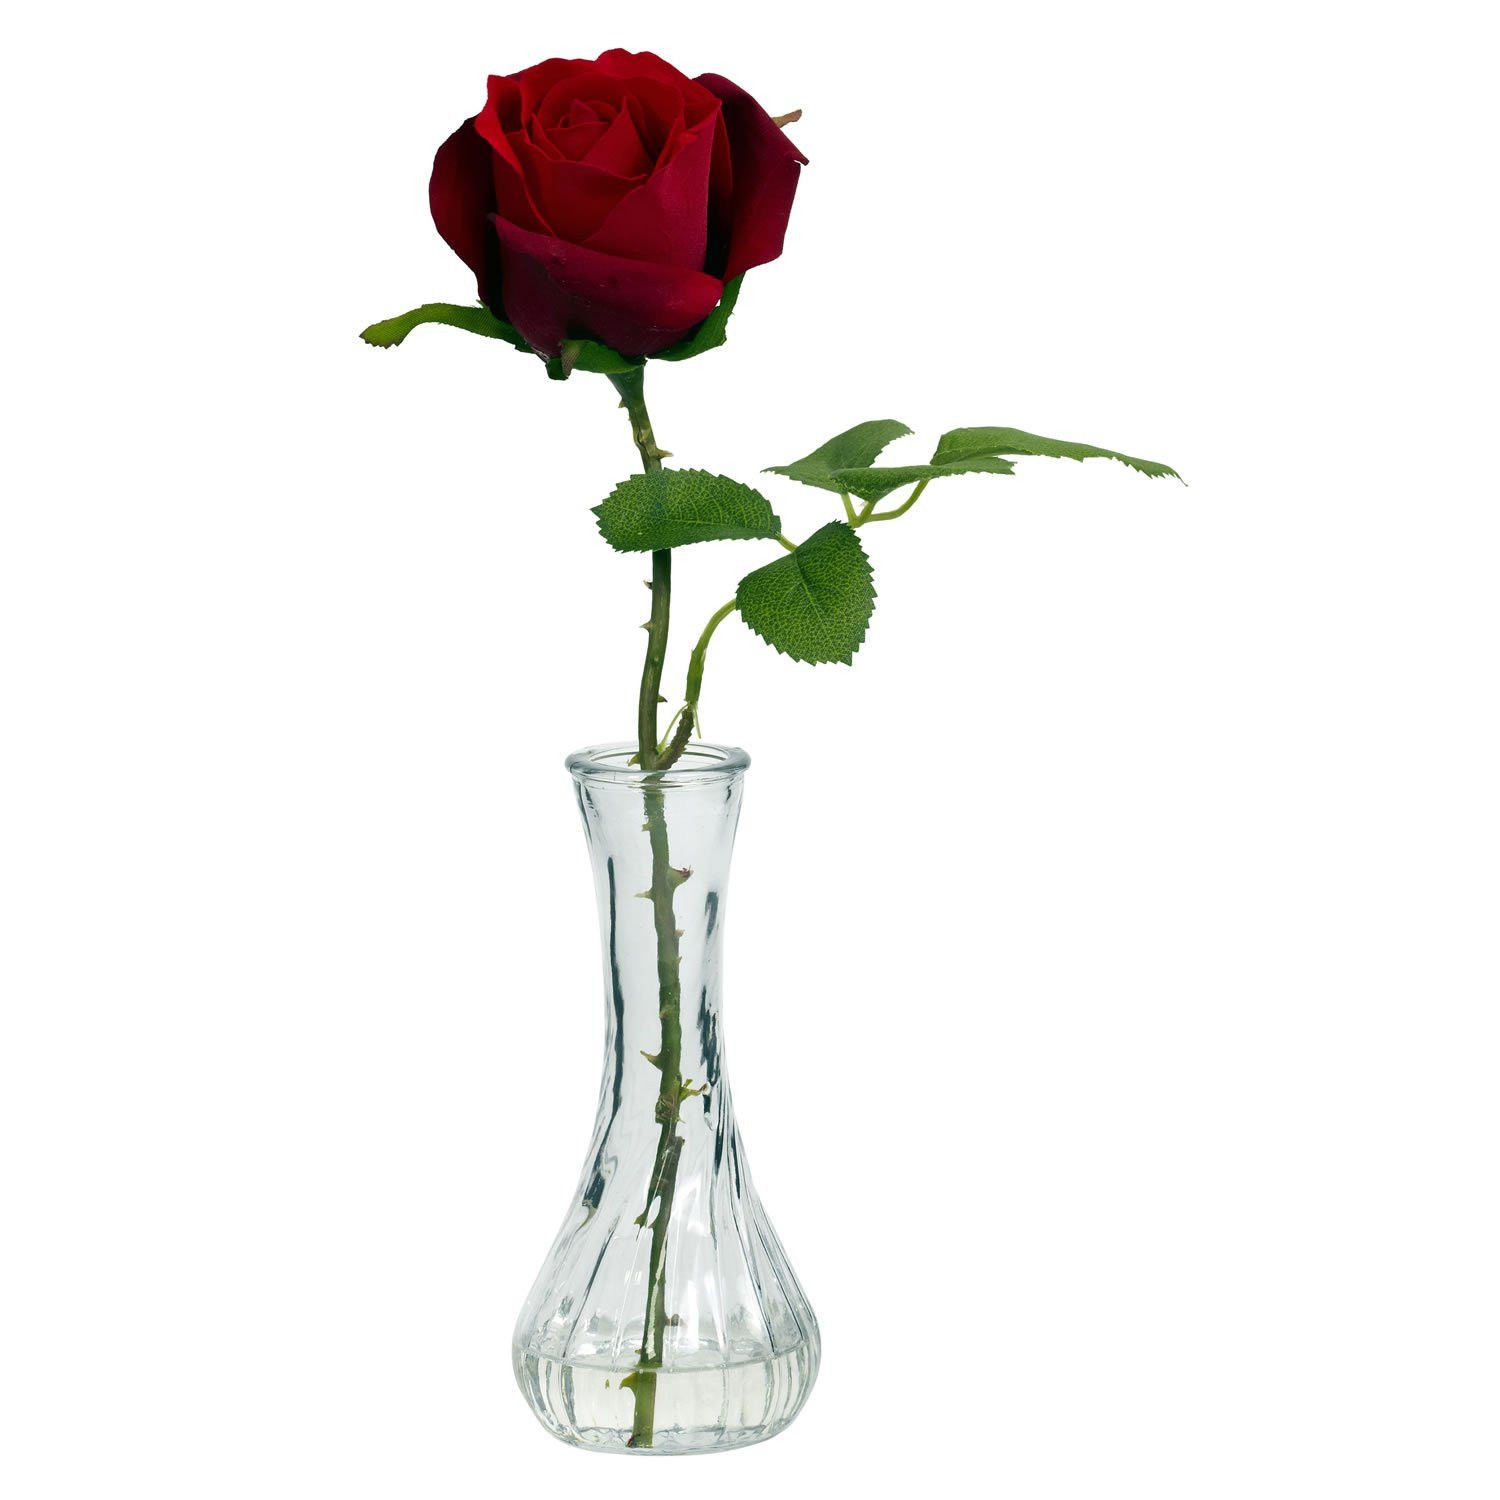 Clear Acrylic Vase Of Pictures Of Roses In A Vase Inspirational Vase Redh Vases Single within Pictures Of Roses In A Vase Inspirational Vase Redh Vases Single Rose In Vasei 0d A